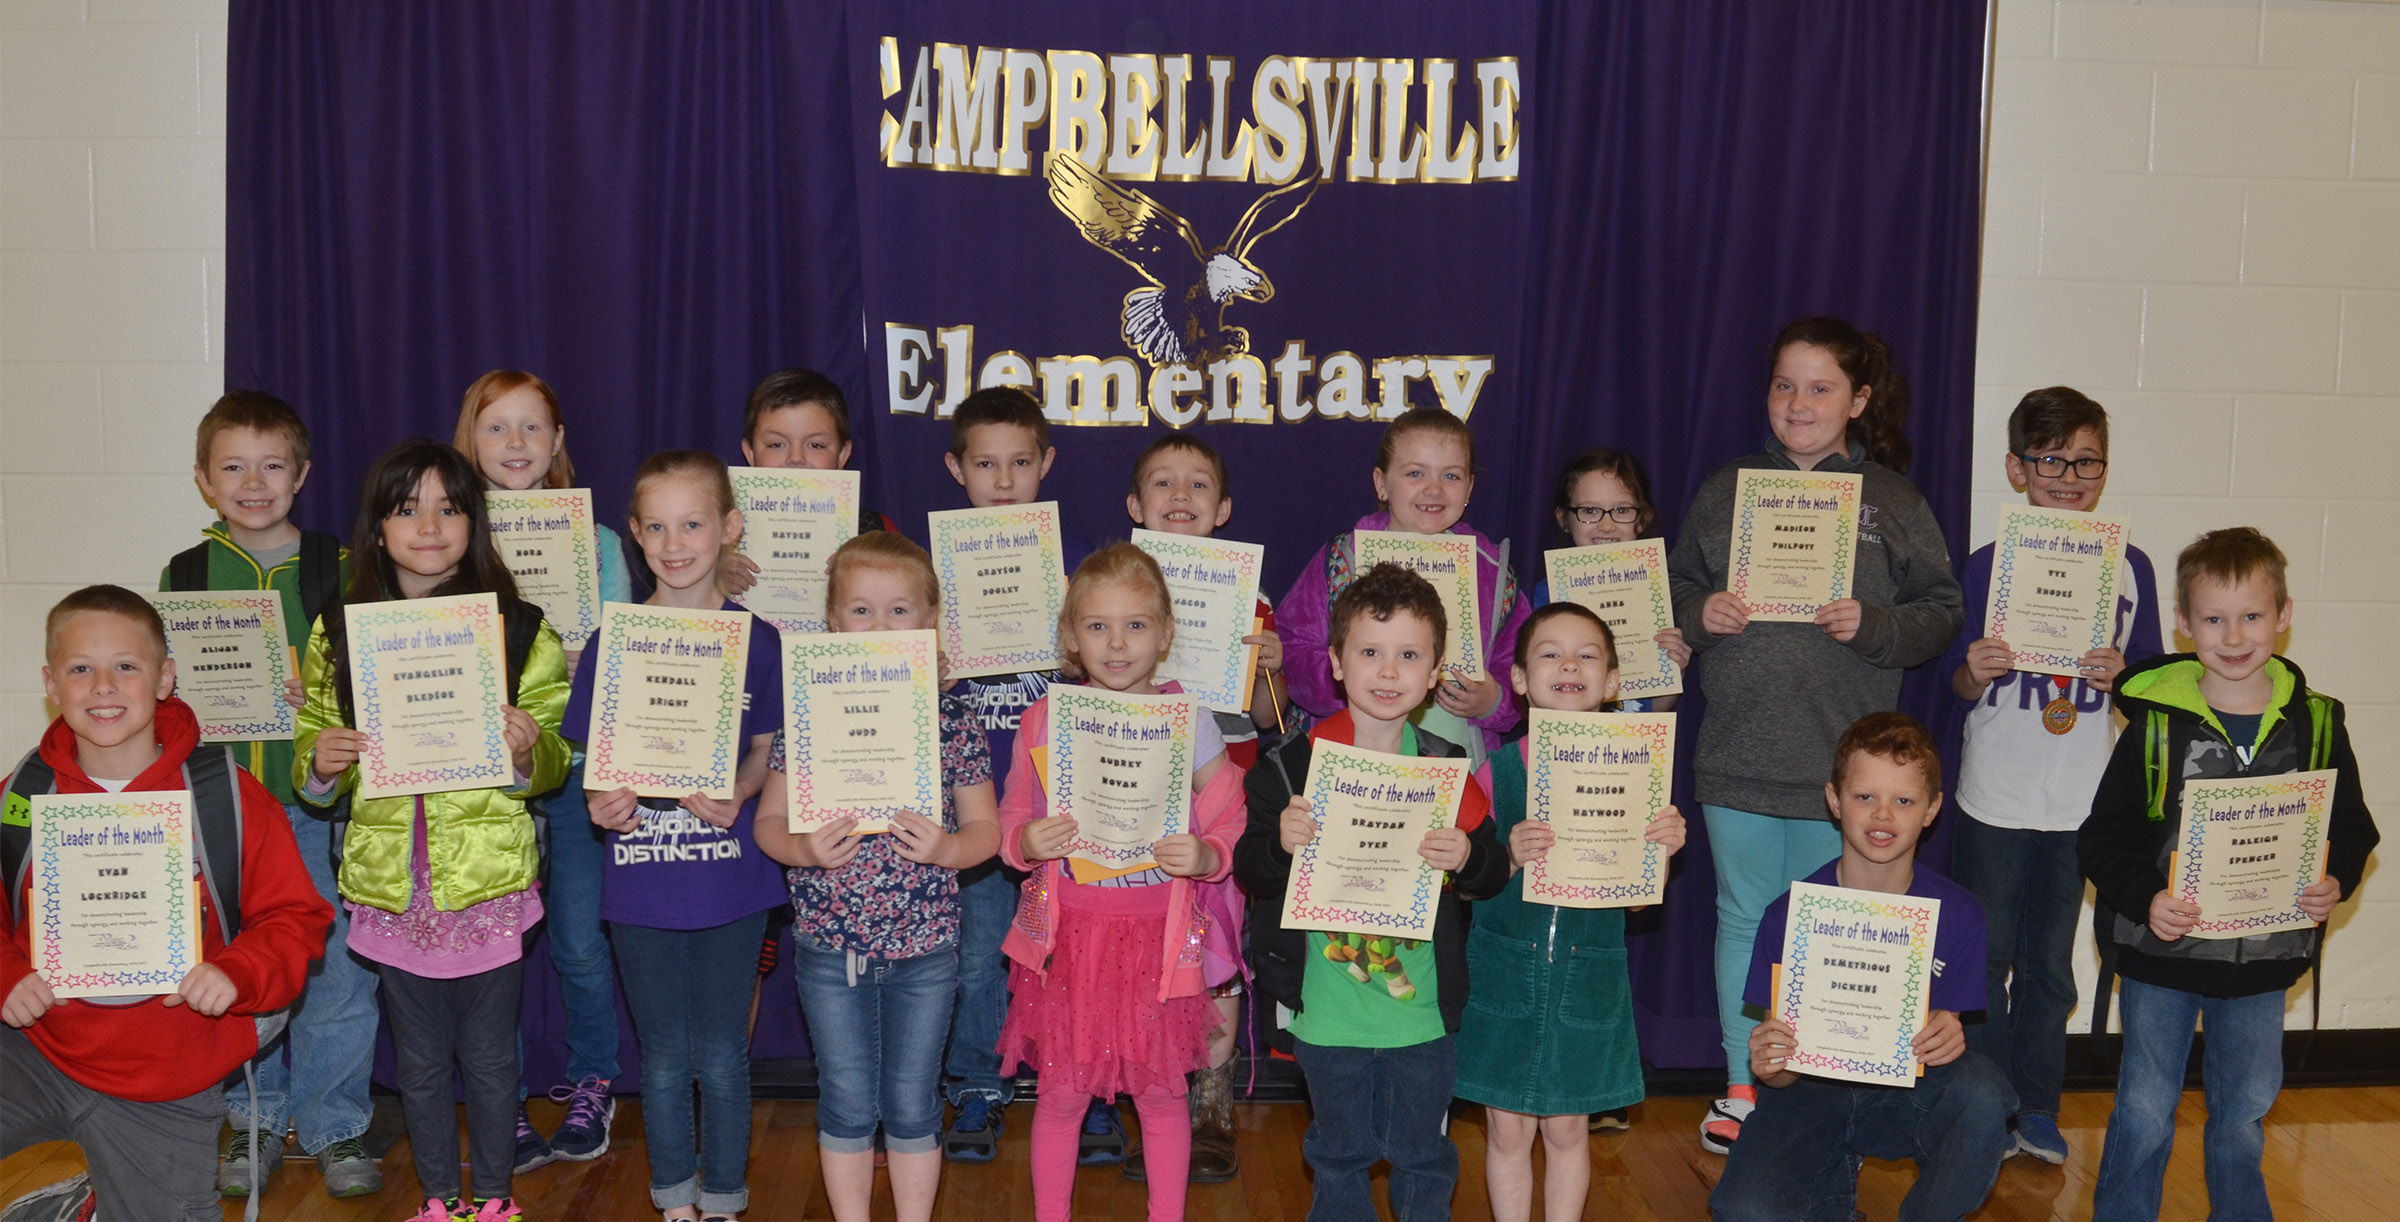 From left, front, are second-grader Evan Lockridge, third-graders Evangeline Bledsoe and Kendall Bright, kindergarteners Lillie Judd, Aubrey Novak, Braydan Dyer and Madison Haywood, third-grader Demetrious Dickens and first-grader Raleigh Spencer. Back, second-grader Alijah Henderson, third-grader Nora Harris, second-grader Hayden Maupin, third-grader Grayson Dooley, first-graders Jacob Golden, London Whitlow and Anna Keith, third-grader Madison Philpott and second-grader Tye Rhodes. Absent from the photo are first-graders Rizzo McKenzie and Karson Burchett.